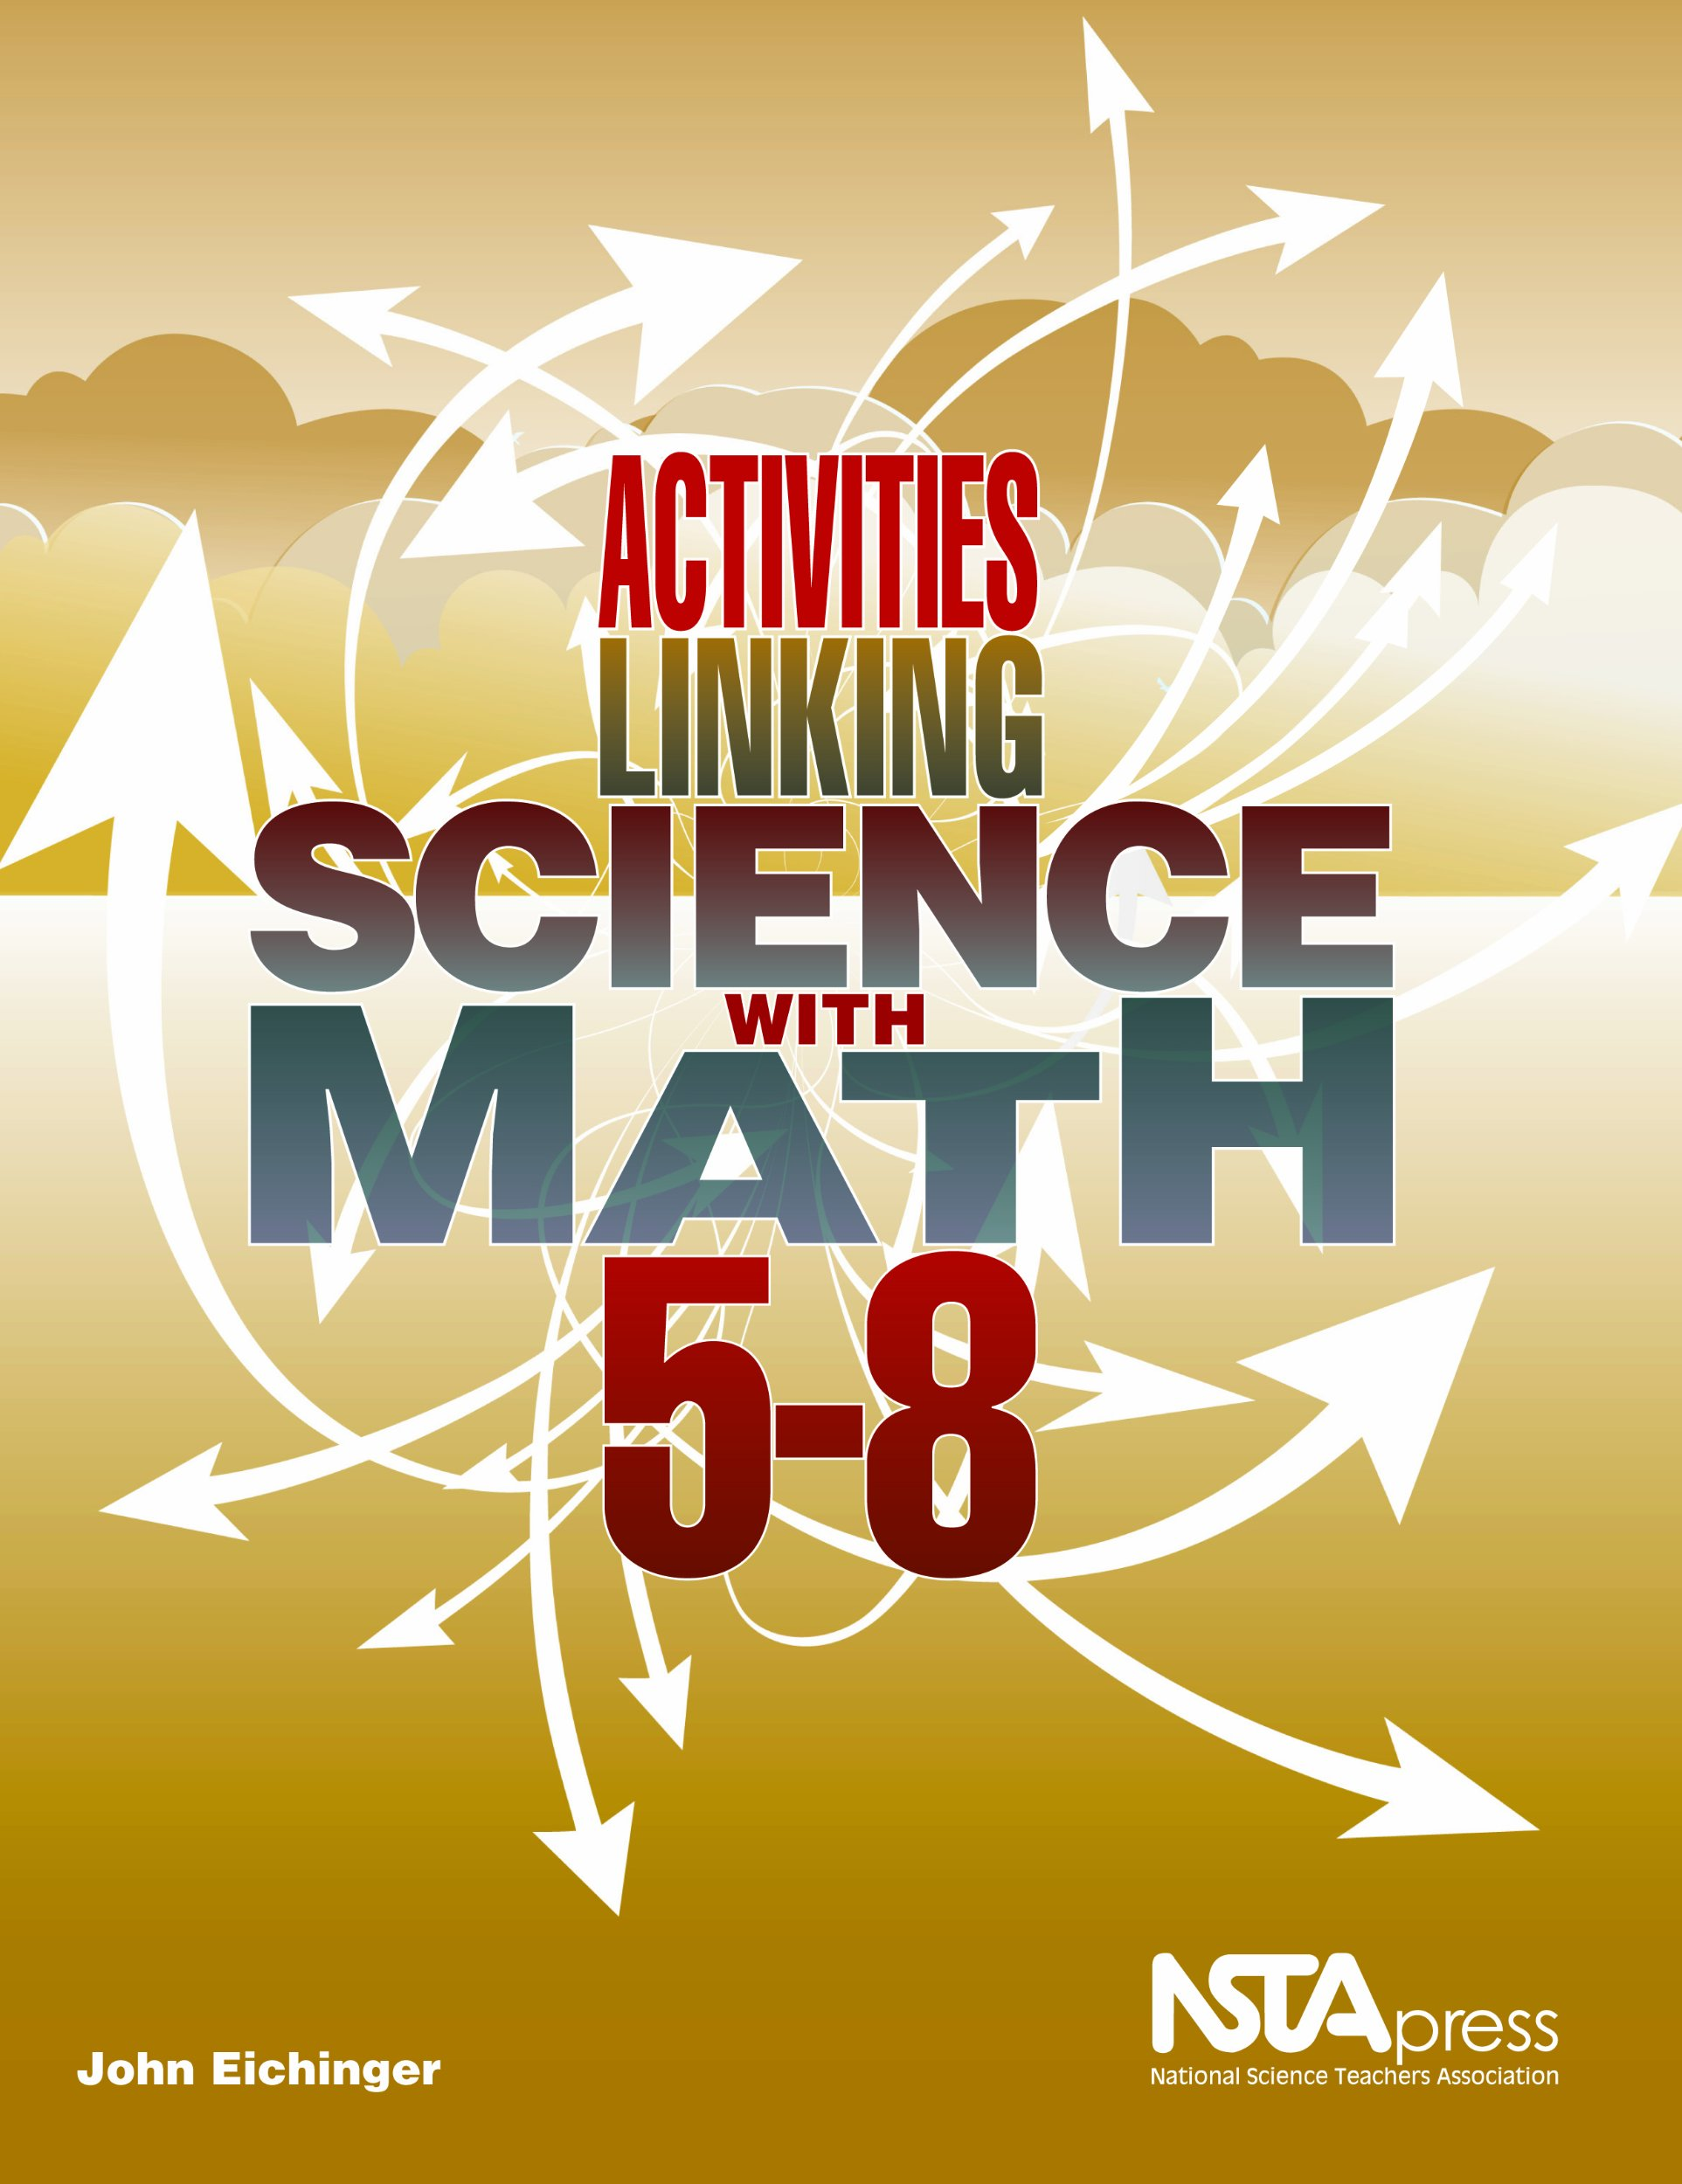 Activities Linking Science With Math, 5-8 (PB236X2) PDF